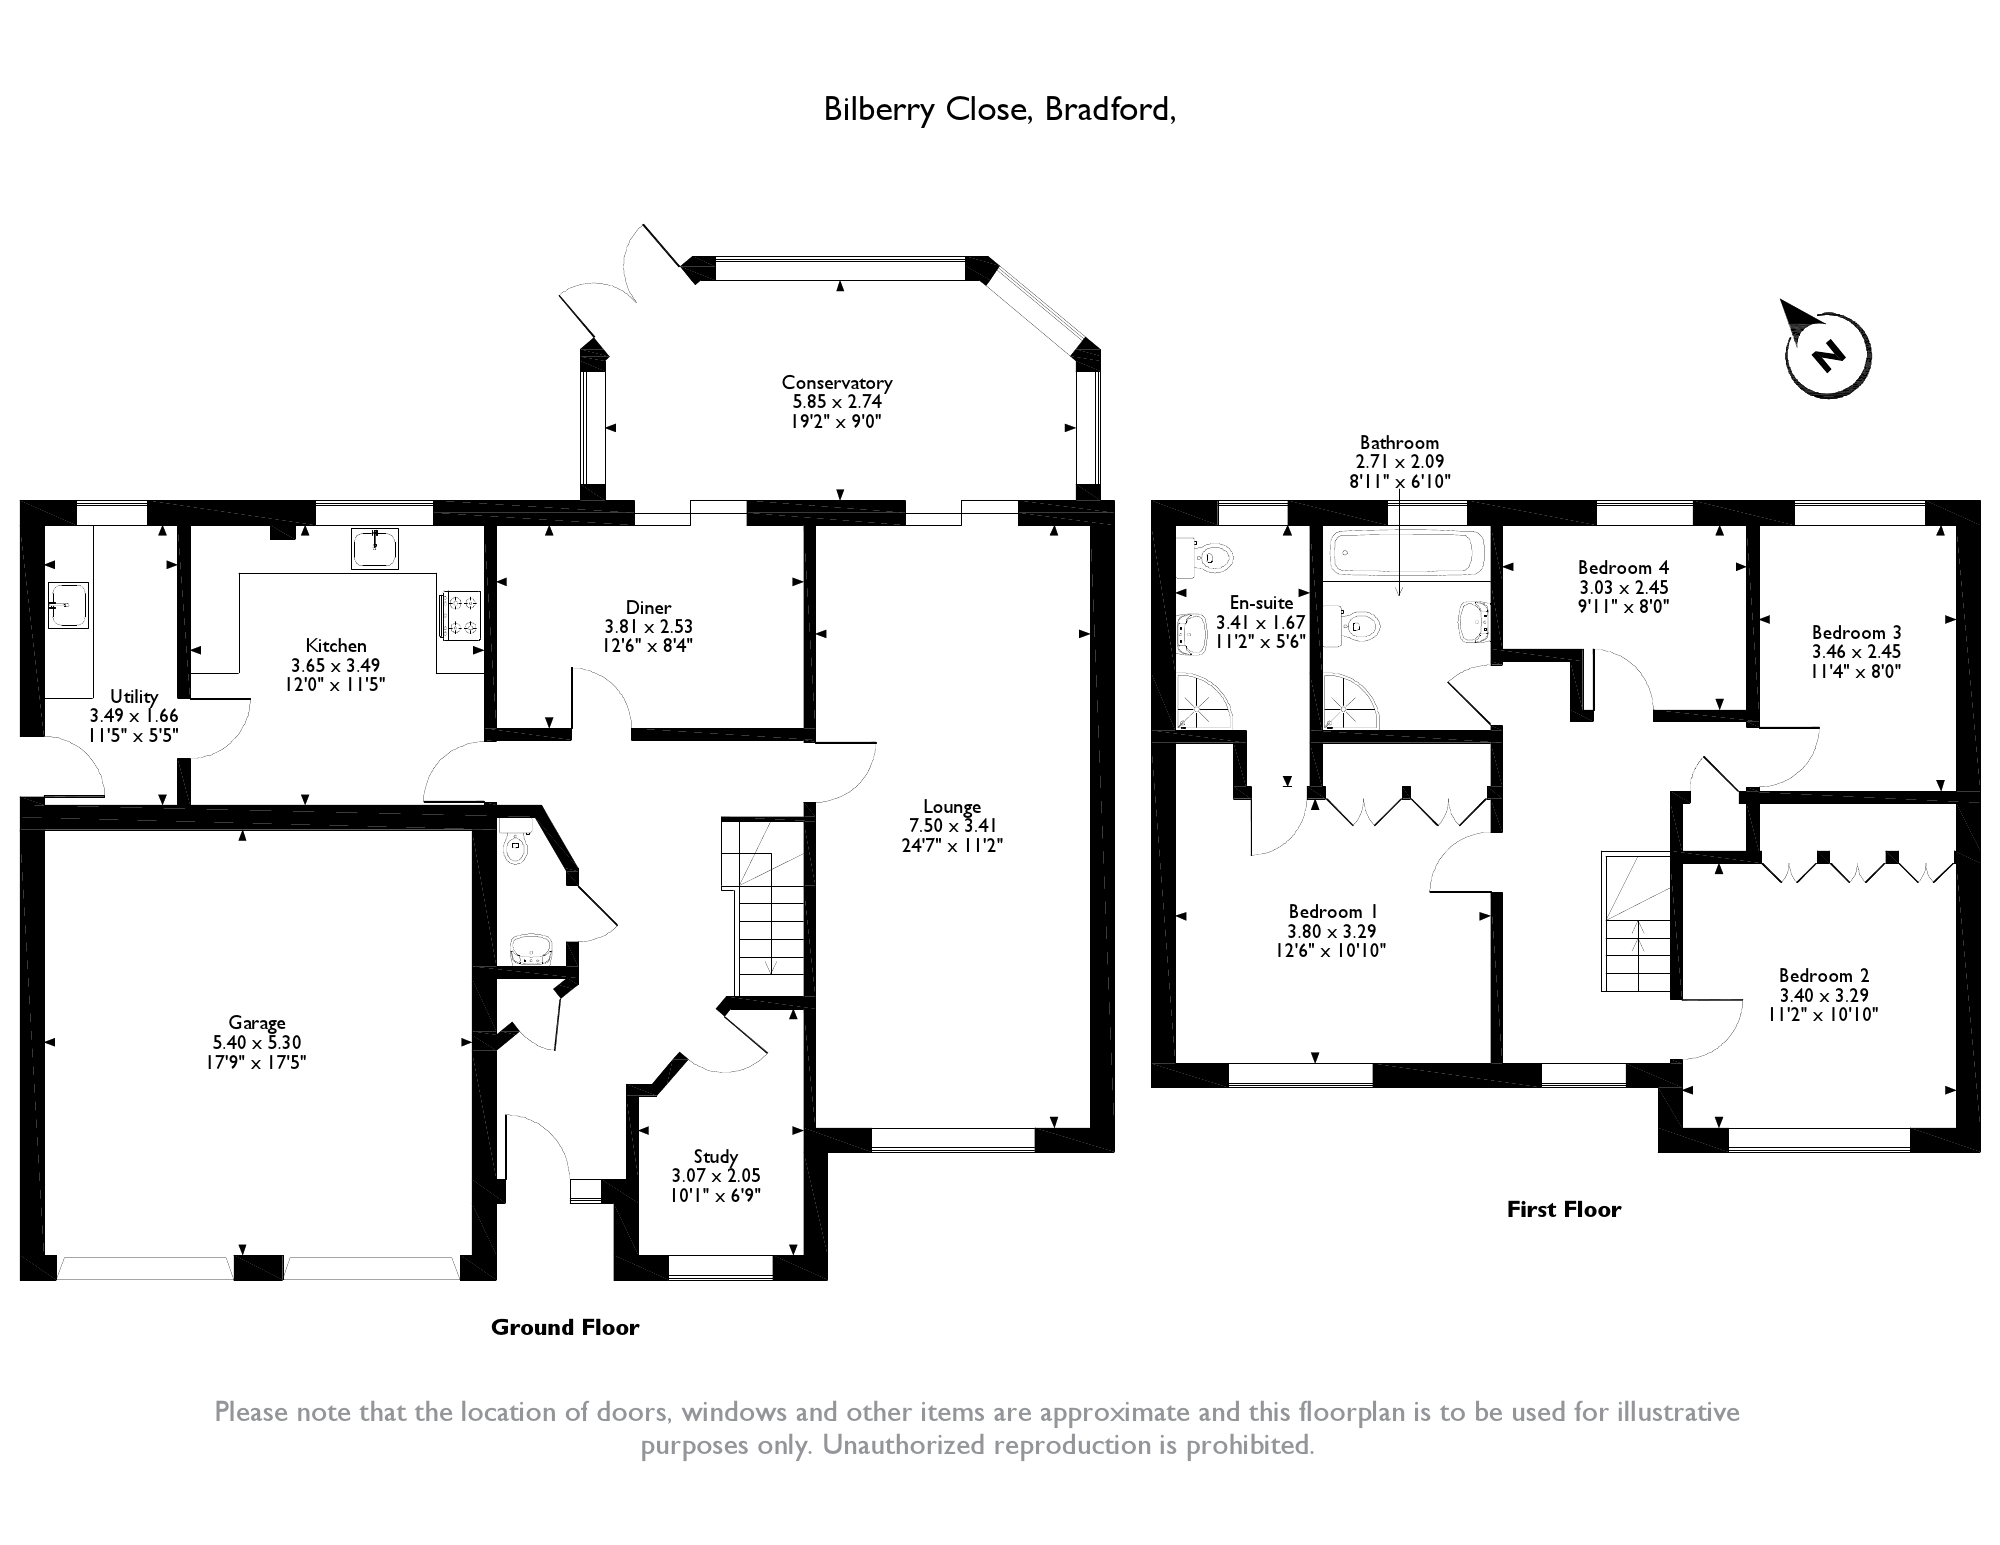 Bilberry Close, Bradford, BD14 floor plan